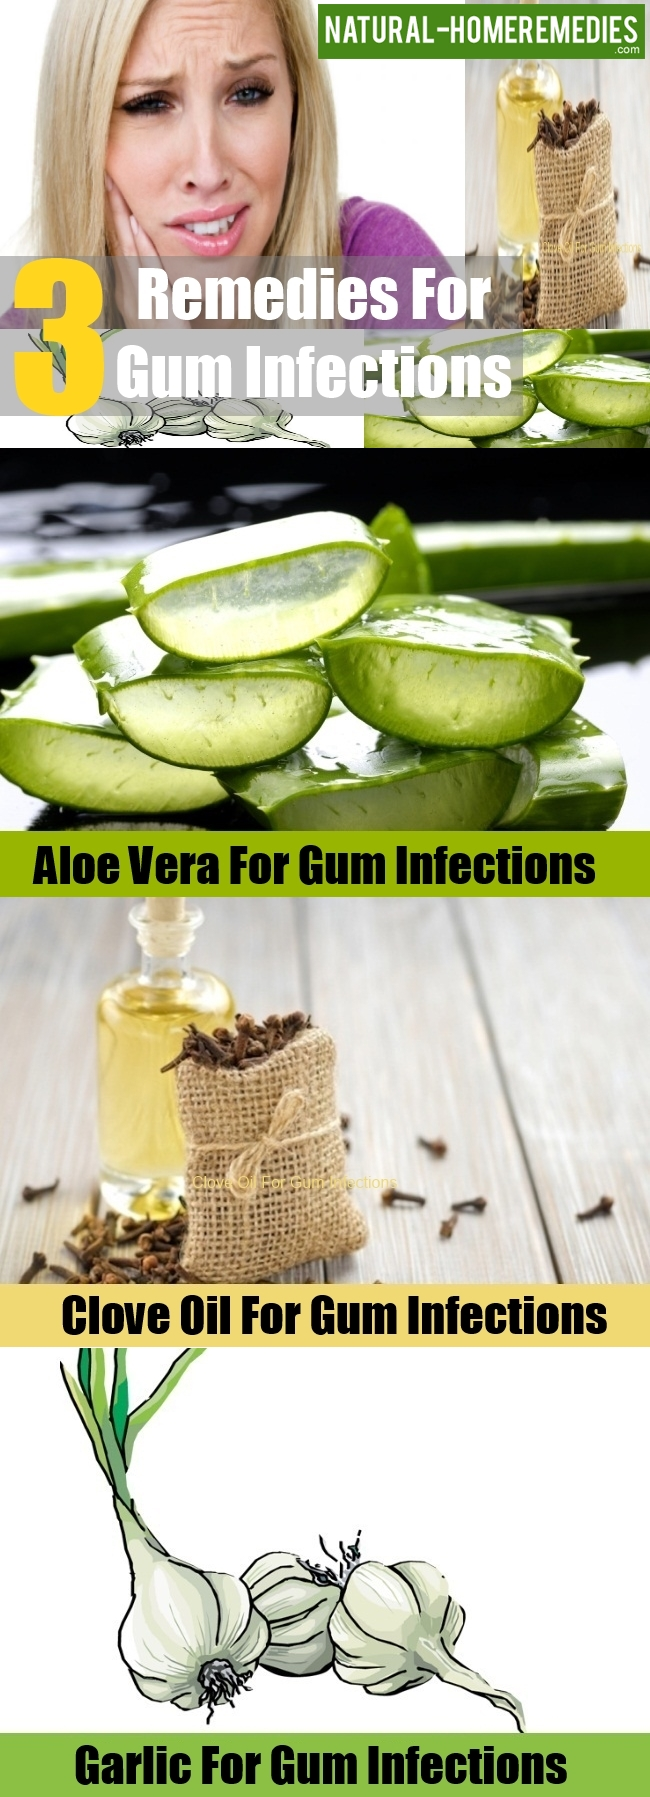 Remedies For Gum Infections